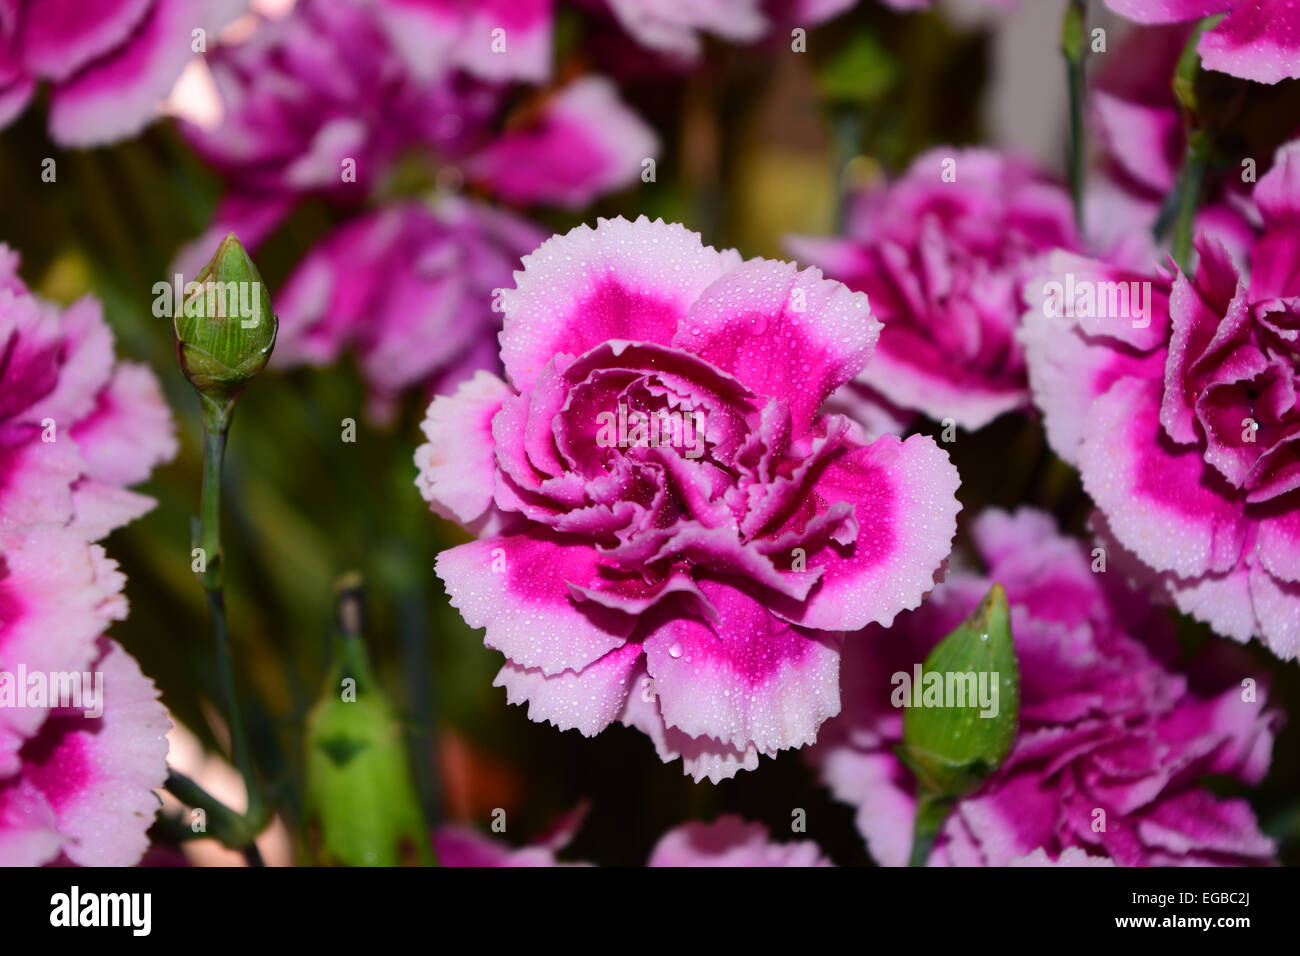 Violet flower flowers india stock photos violet flower flowers beautiful flowers india stock image izmirmasajfo